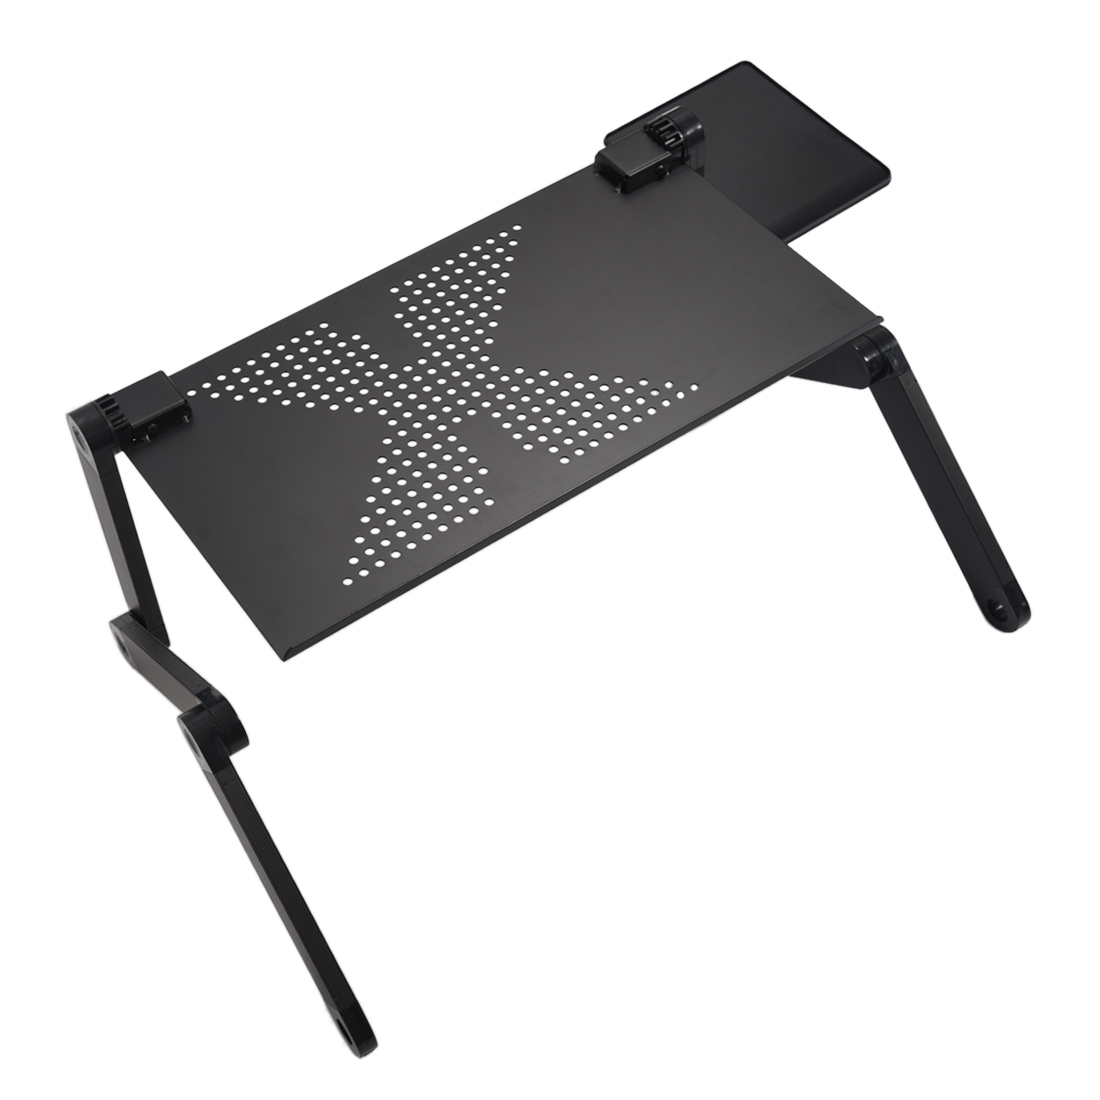 Portable Adjustable Laptop Desk Computer Table Stand Tray